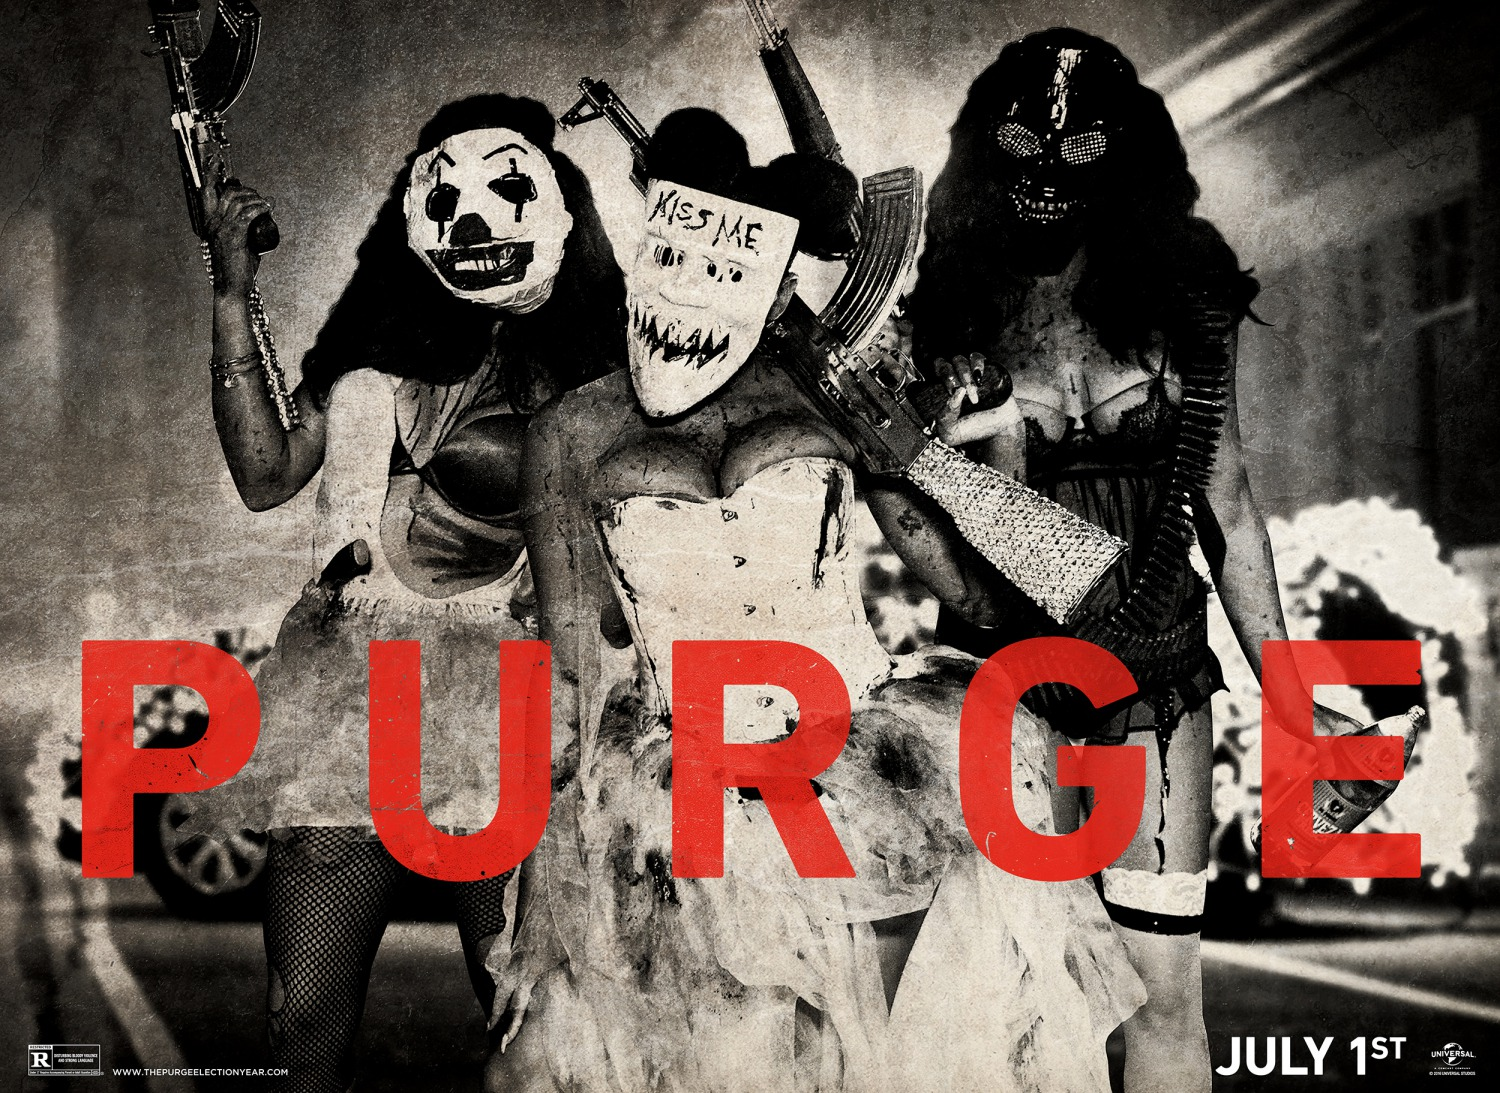 The Purge Election Year Poster Wallpapers: Teaser Trailer